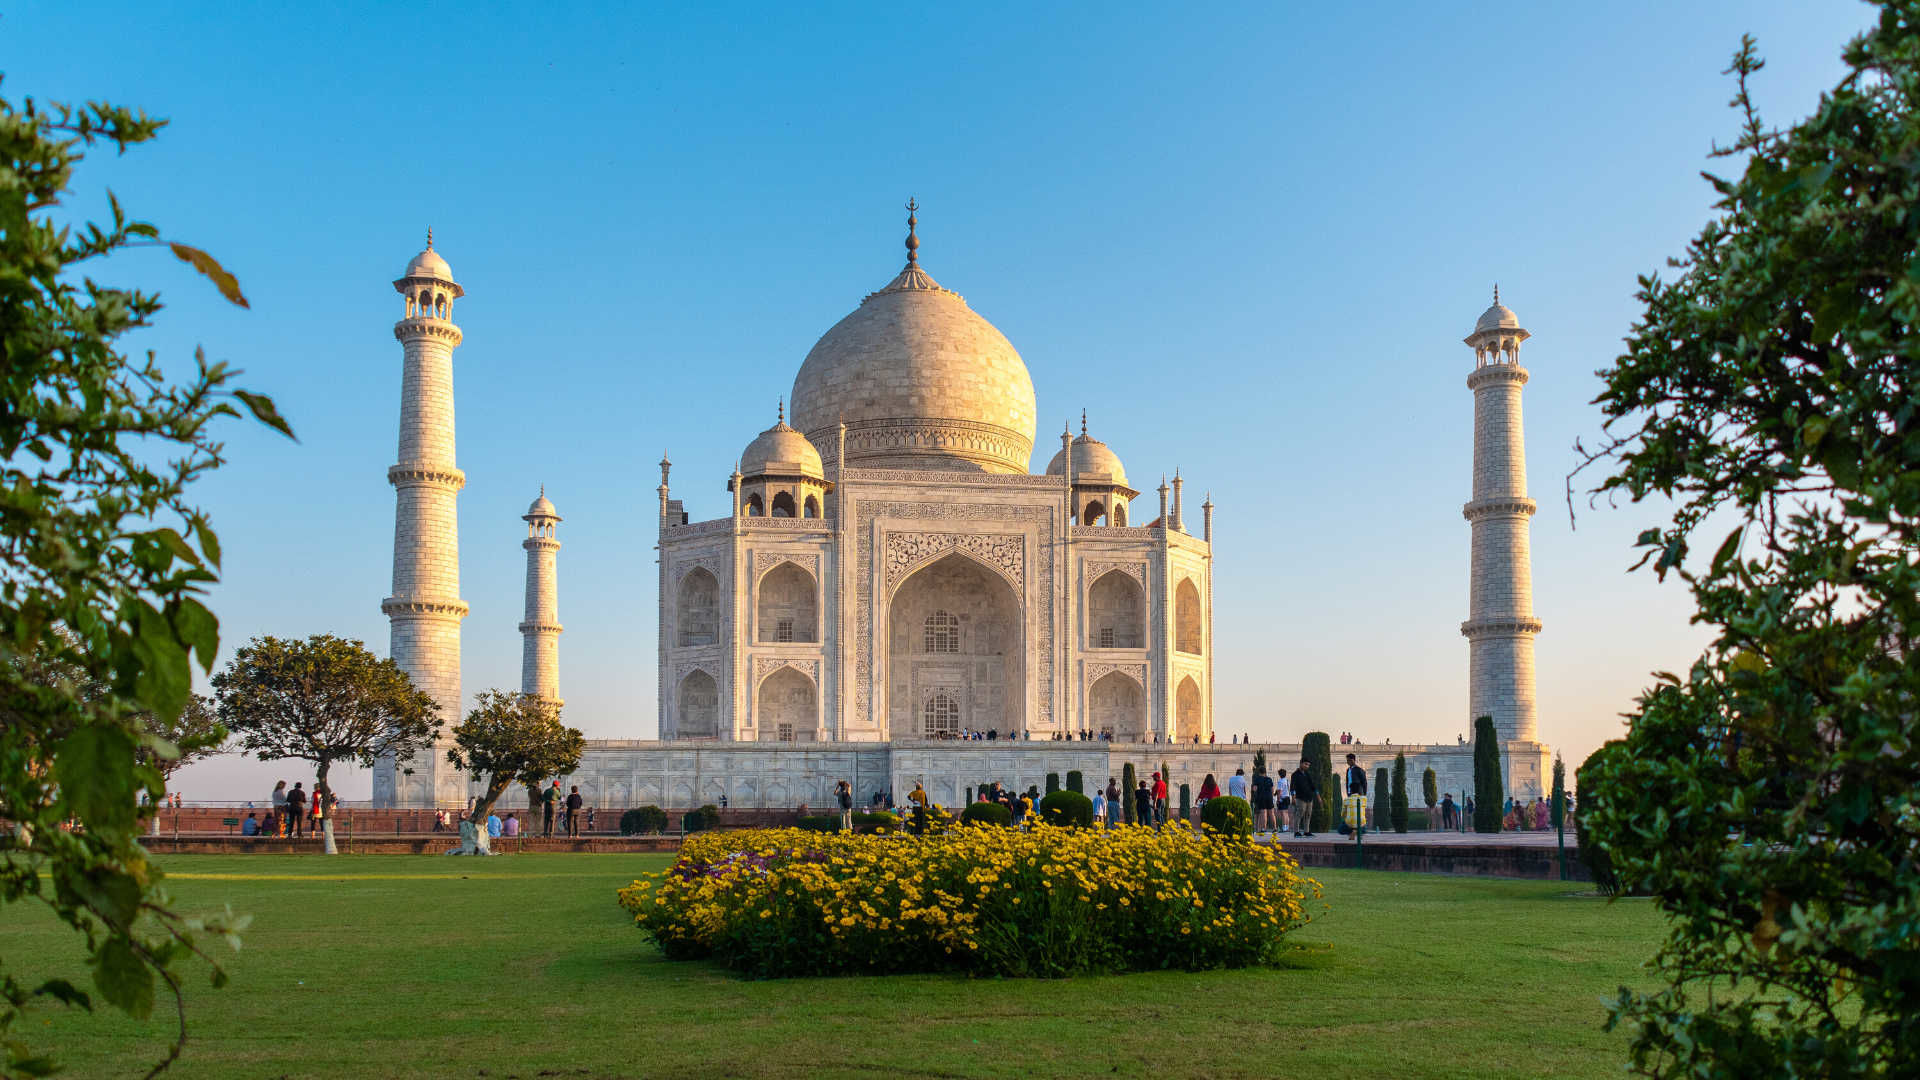 Taj Mahal Tour From Delhi